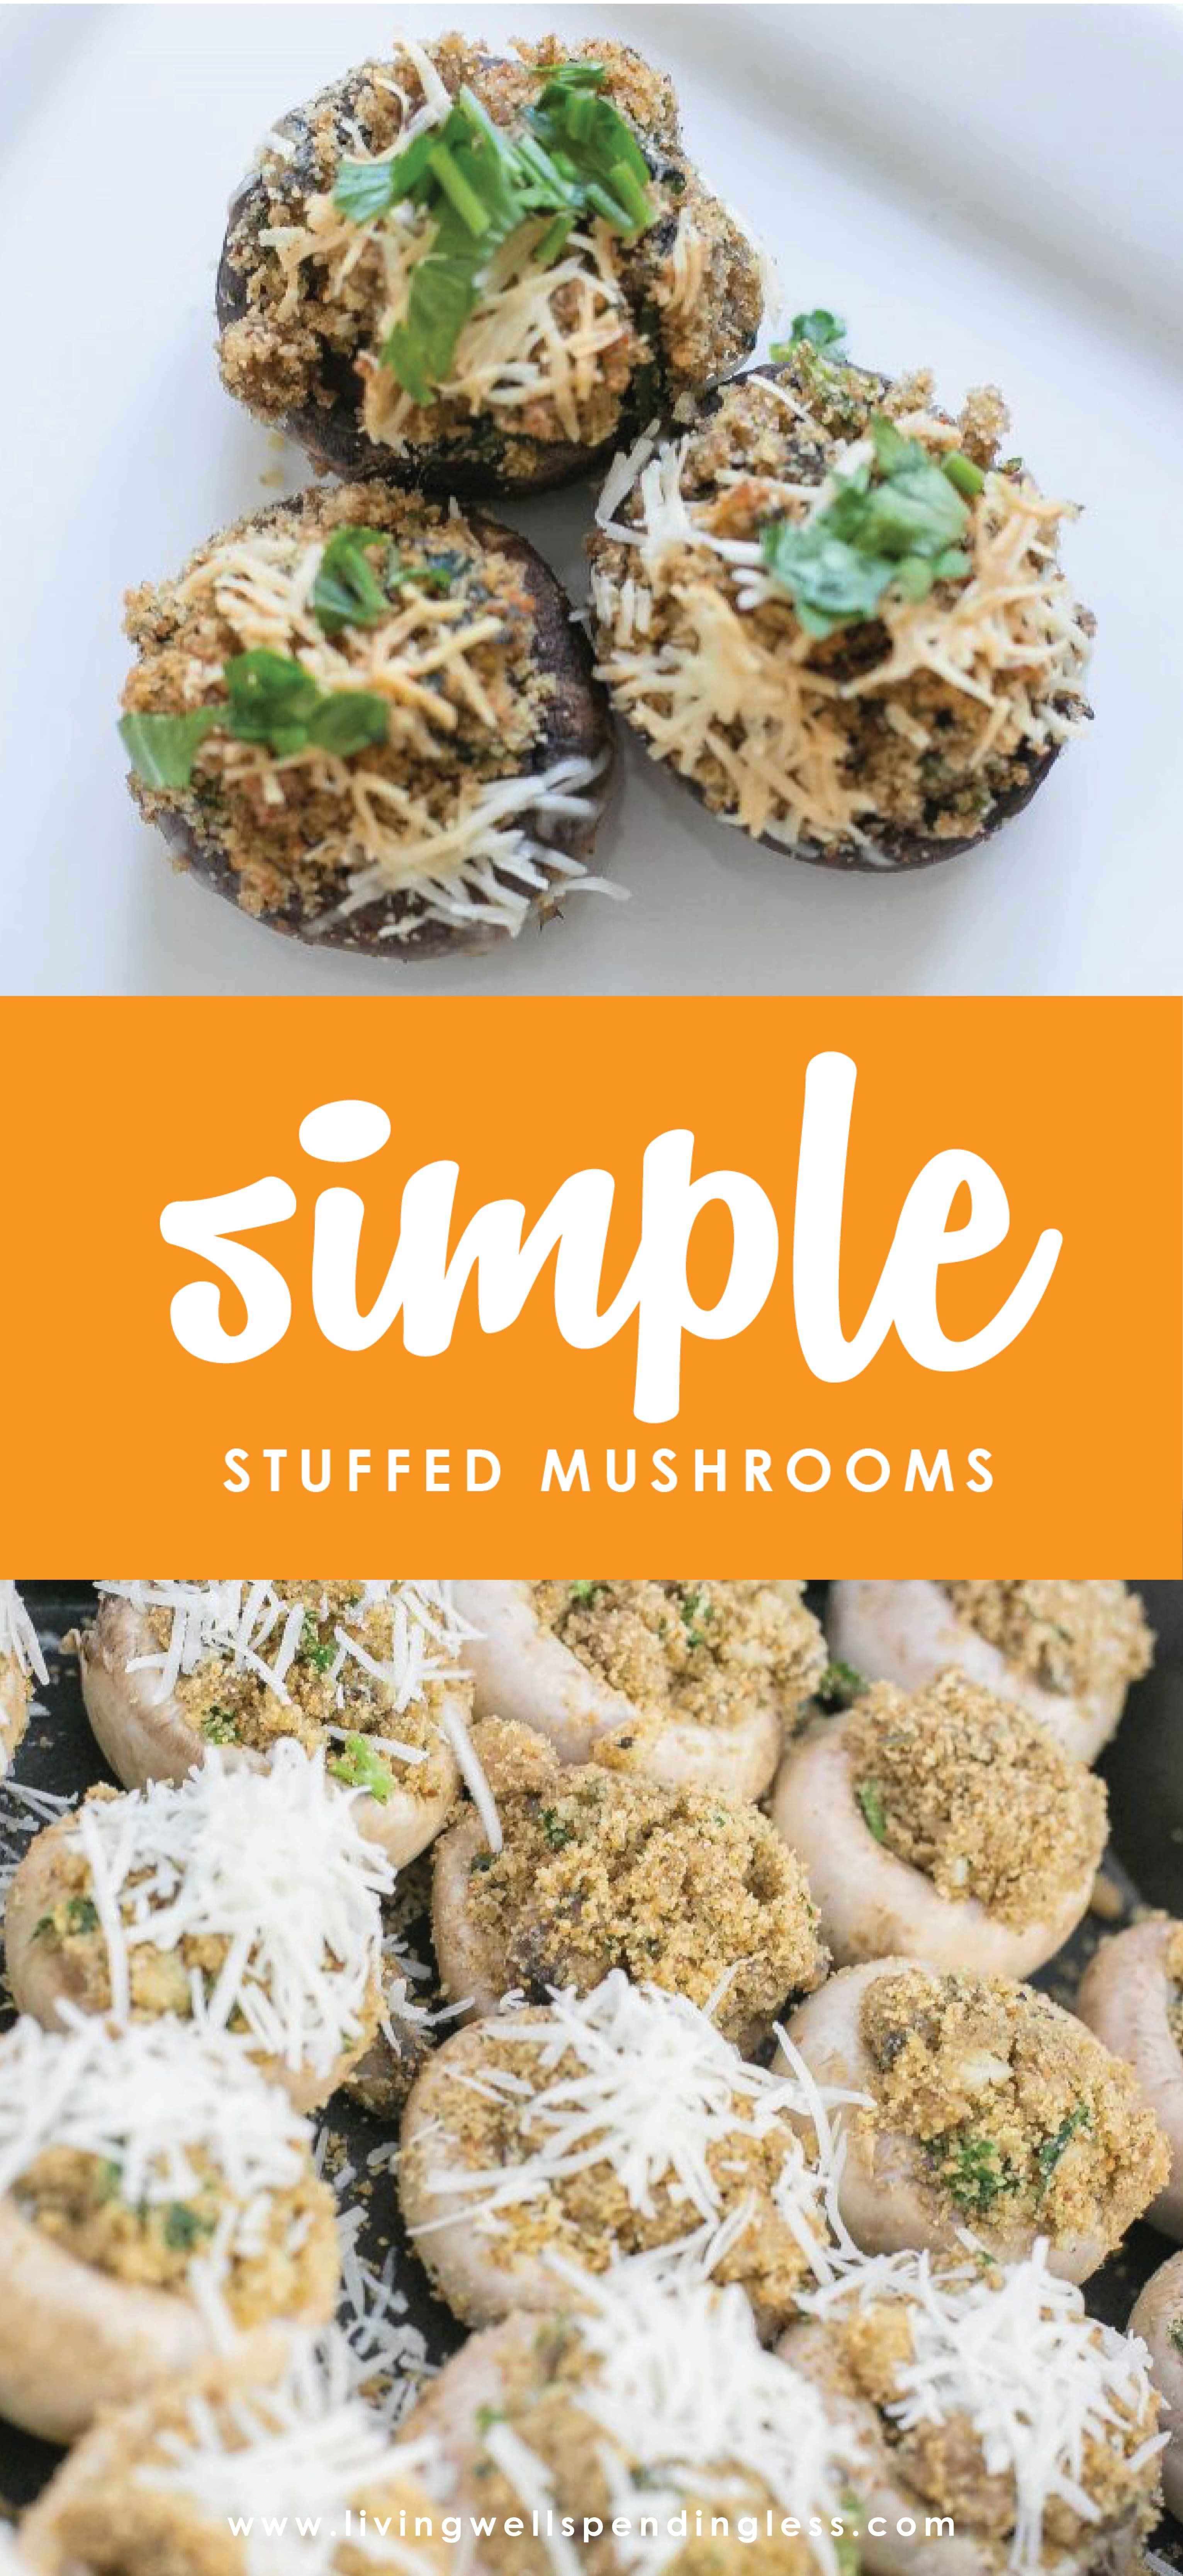 Love mushrooms? These super simple--and ridiculously delicious--stuffed mushrooms will make any day feel like a holiday. Perfect for your holiday menu, or maybe just because!